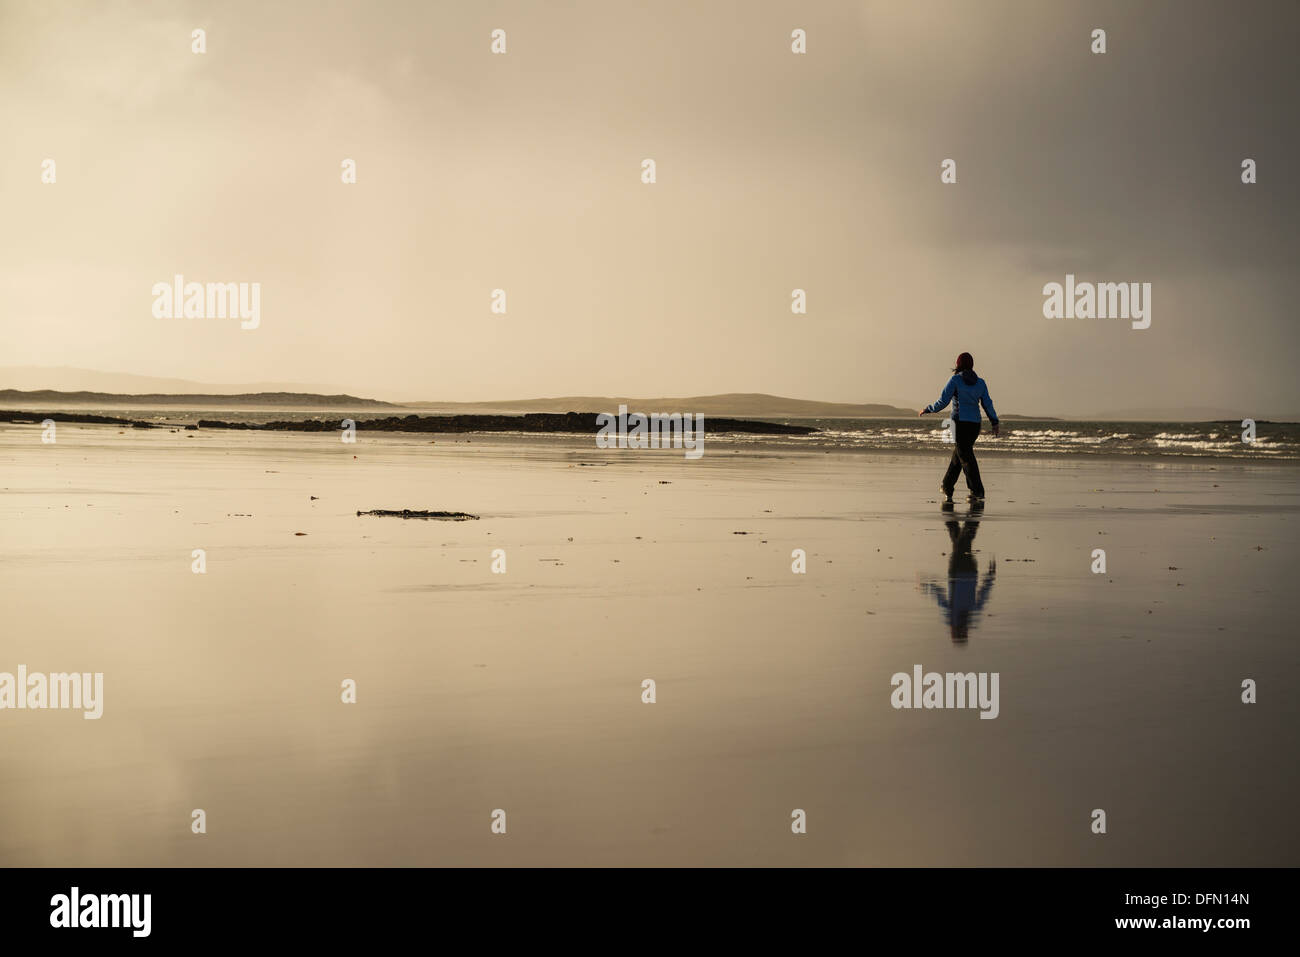 Reflection of woman walking on Traigh Lingeigh beach, North Uist, Outer Hebrides, Scotland - Stock Image